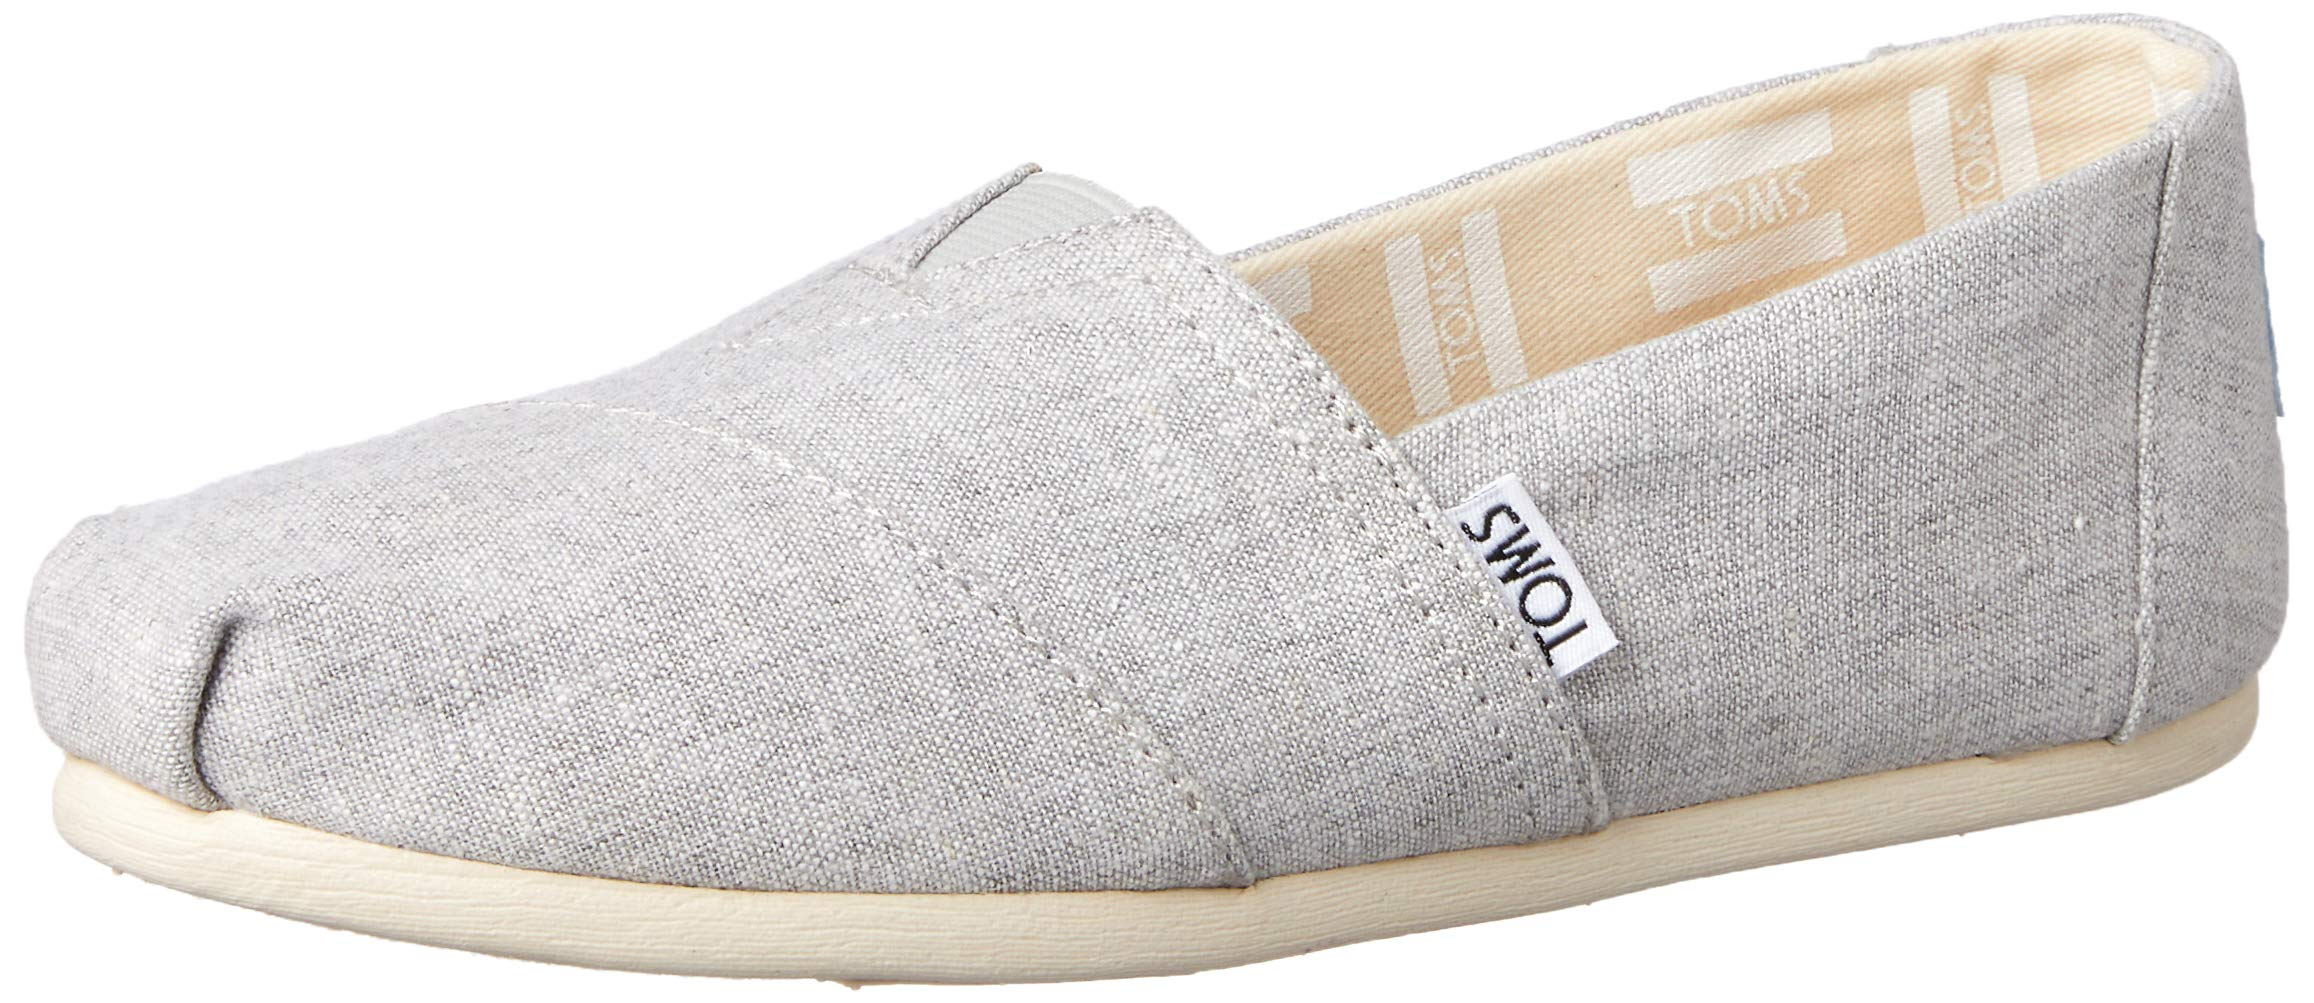 8ed4e5df9bb4 Galleon - TOMS Women s Classic Slip-On (8 B(M) US